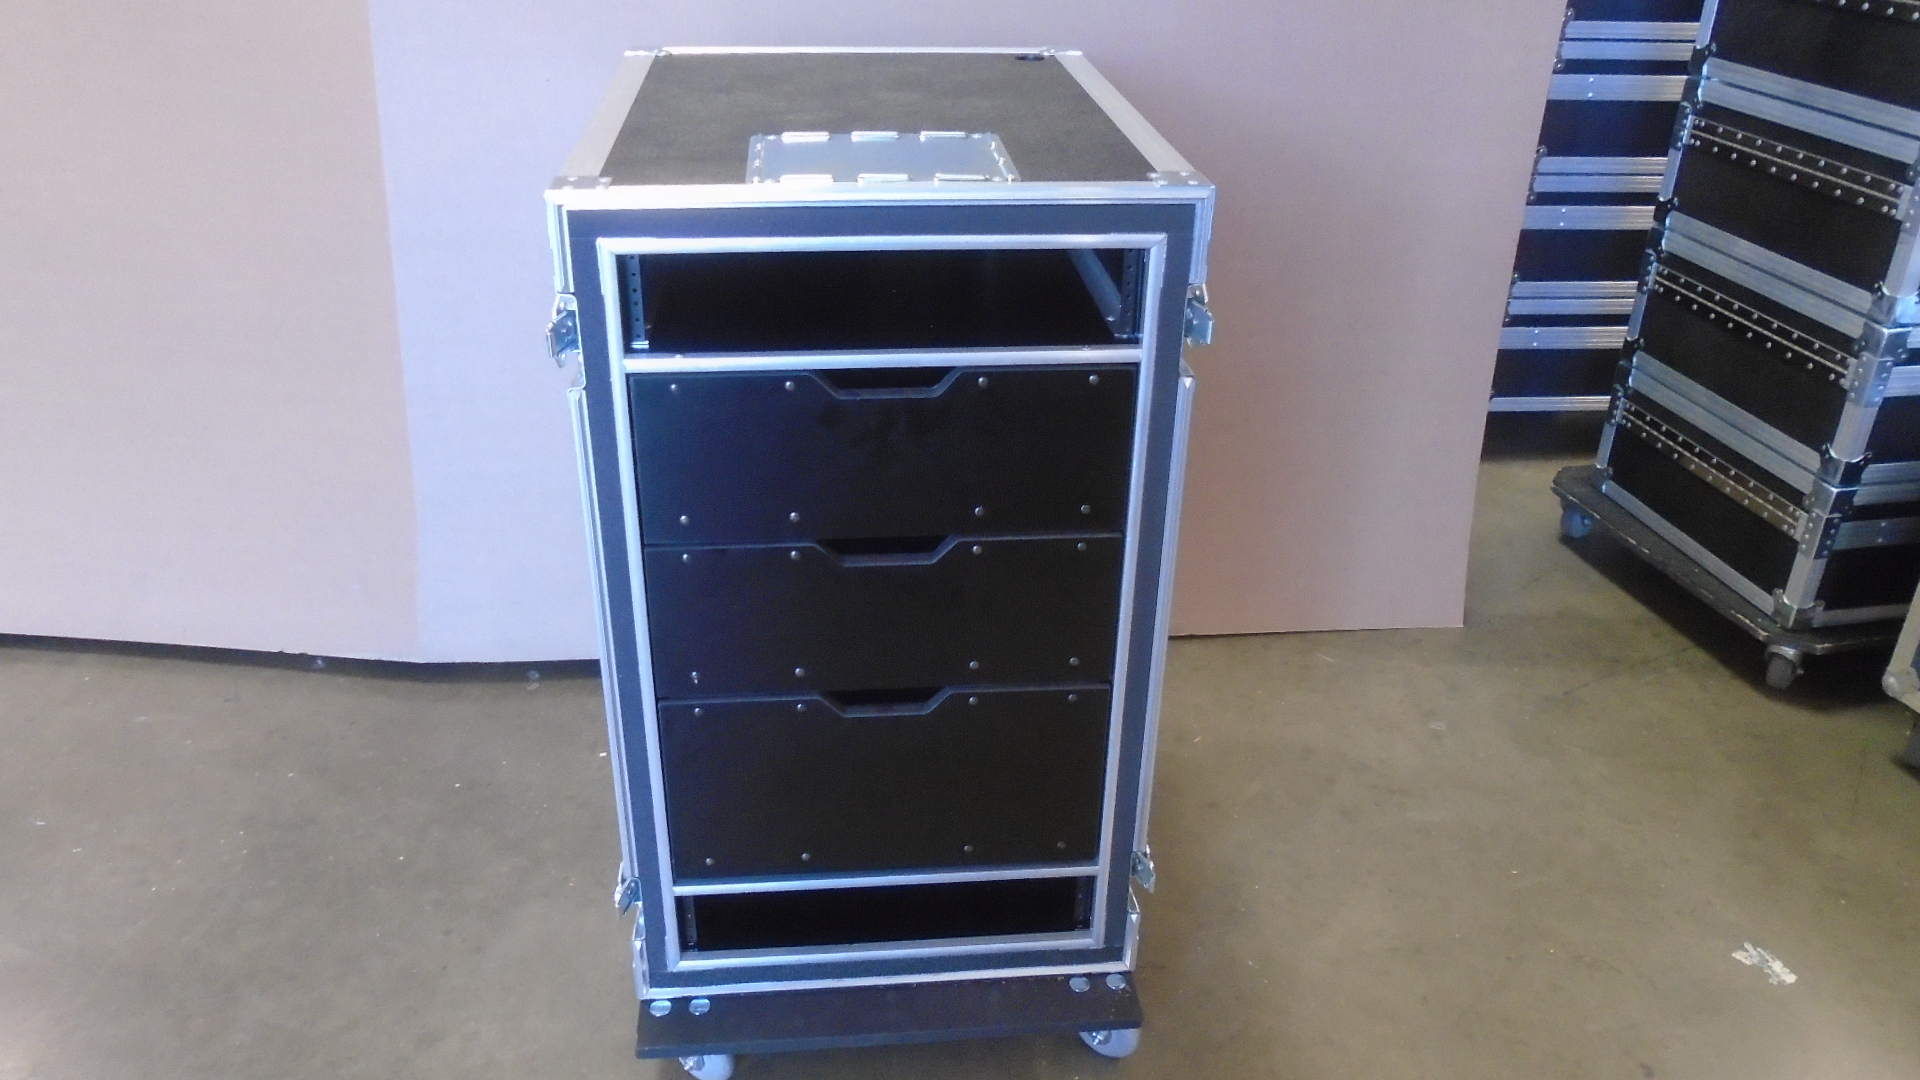 Print # 7723 - Custom 4-RU Shock Mount Road Rack with 3-Pack Custom Drawers By Nelson Case Corp